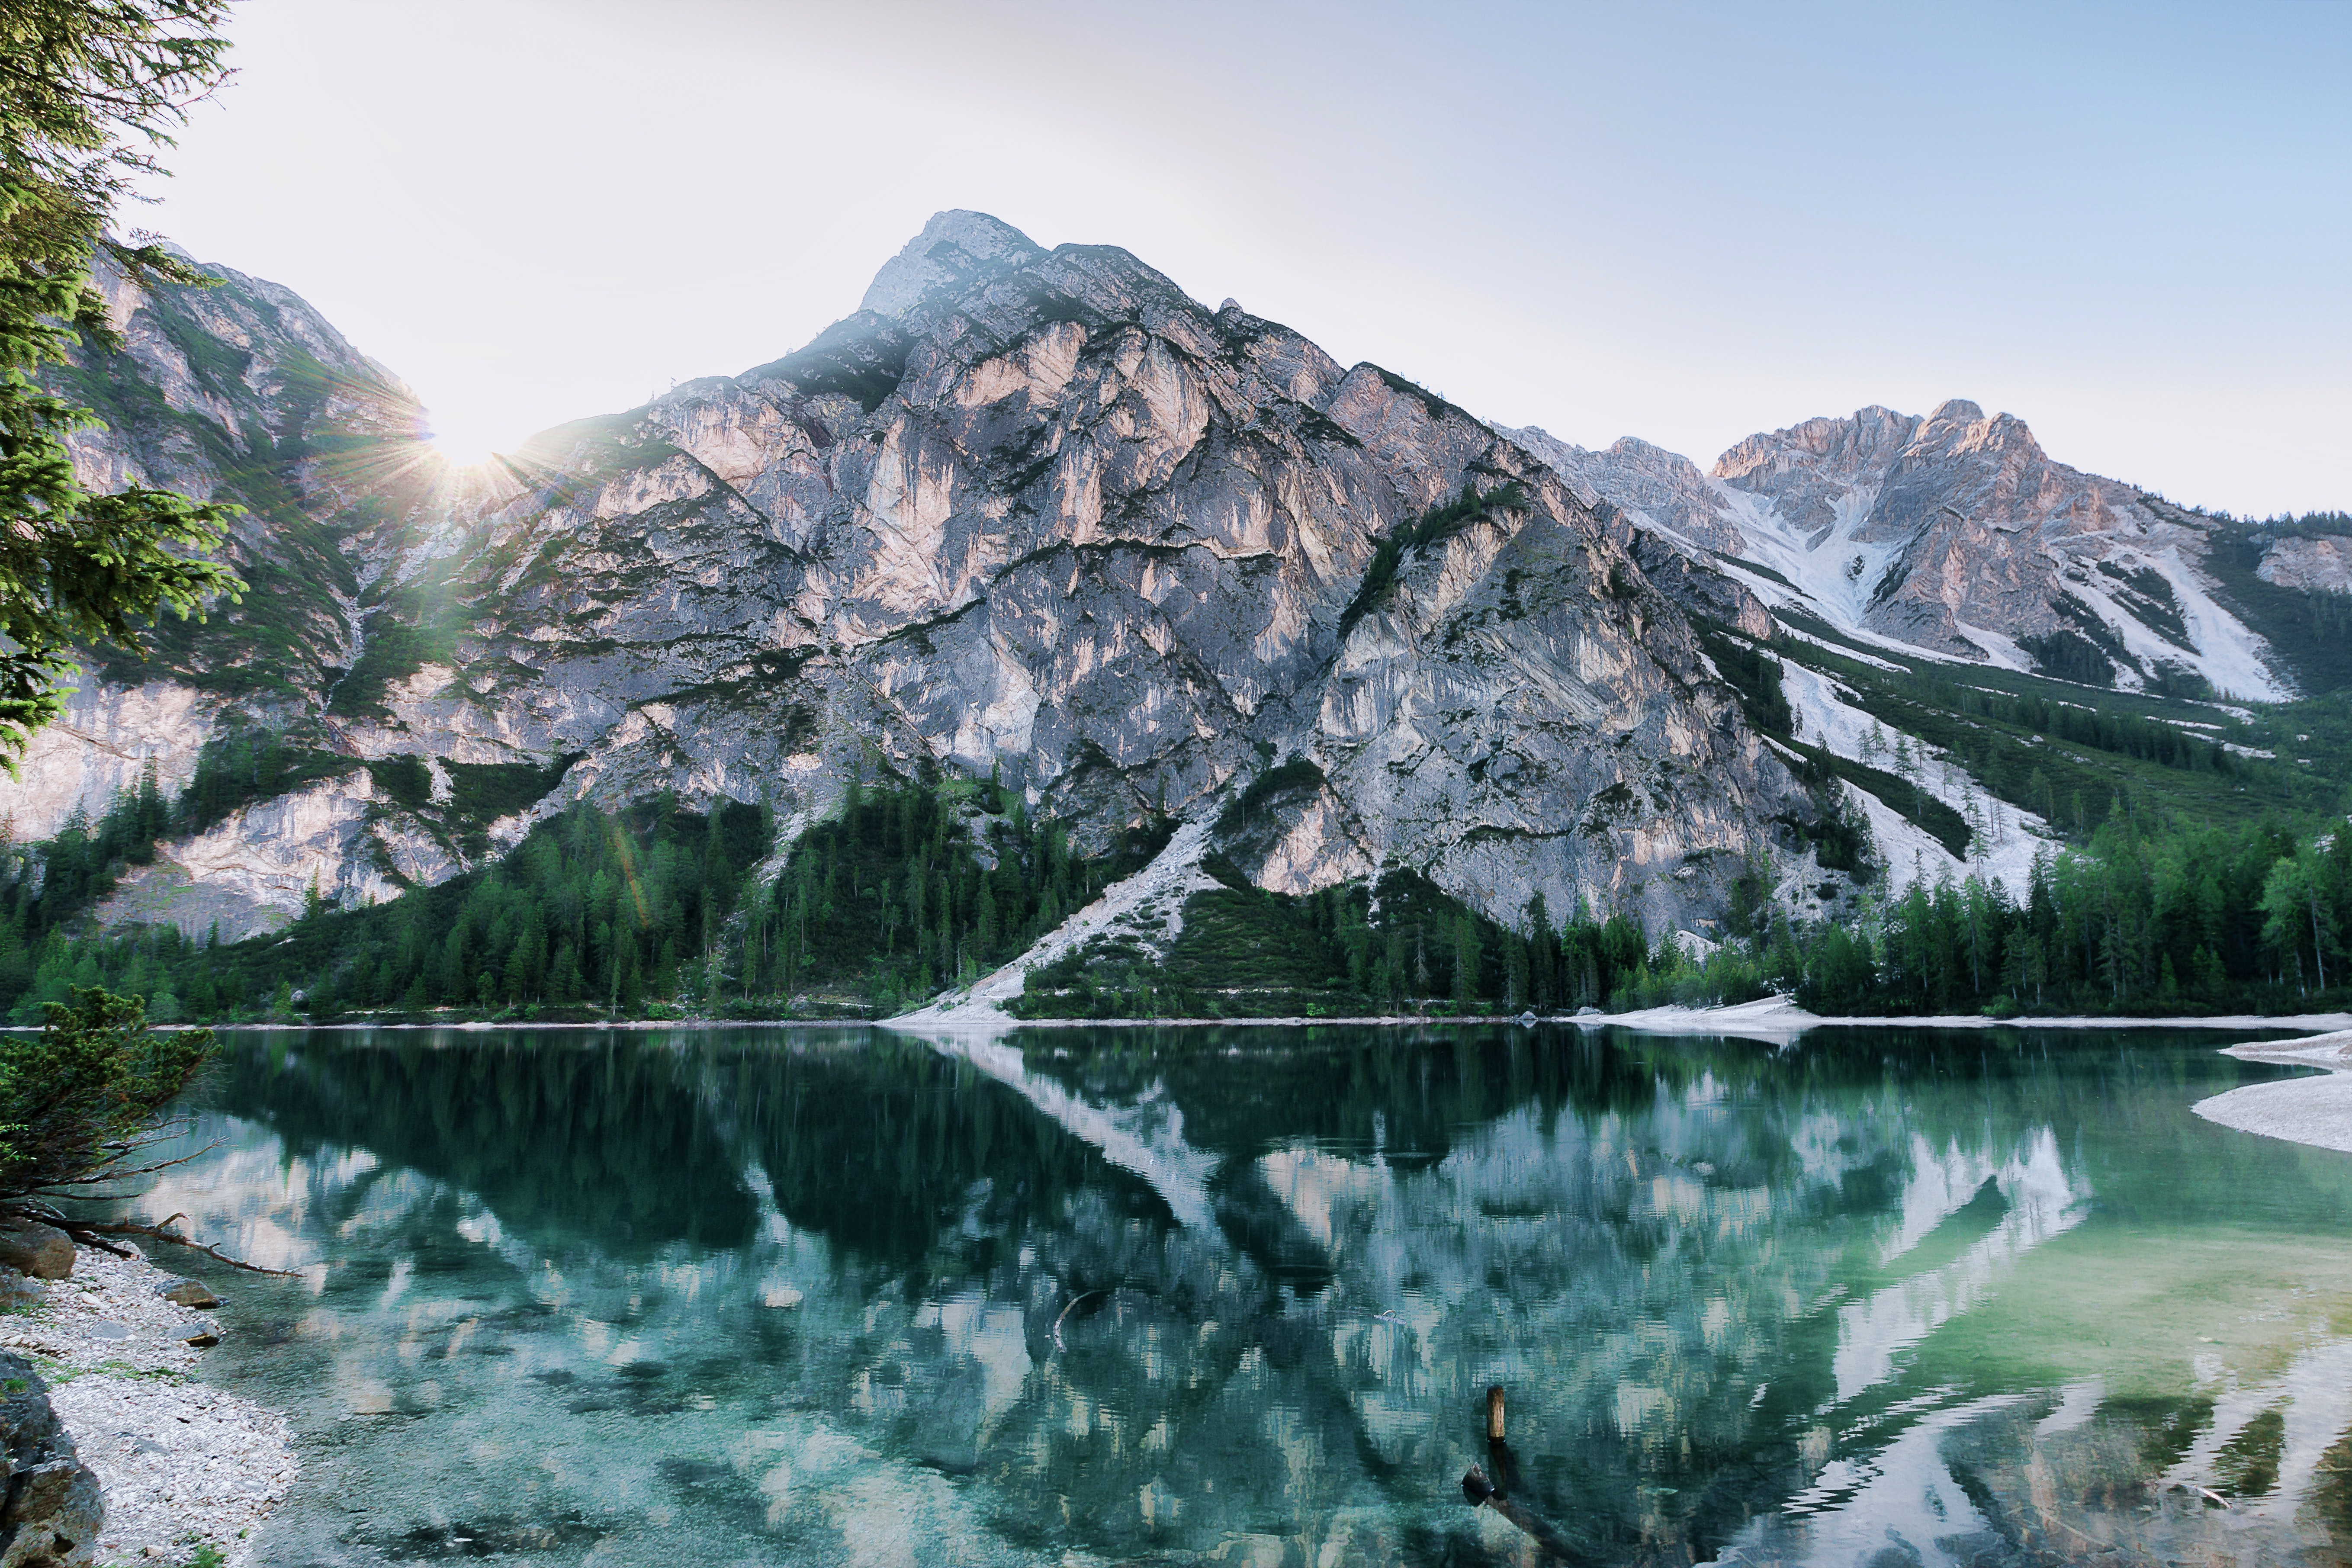 Scenic View of the Mountains, Lake, Scenic, Water, Trees, HQ Photo